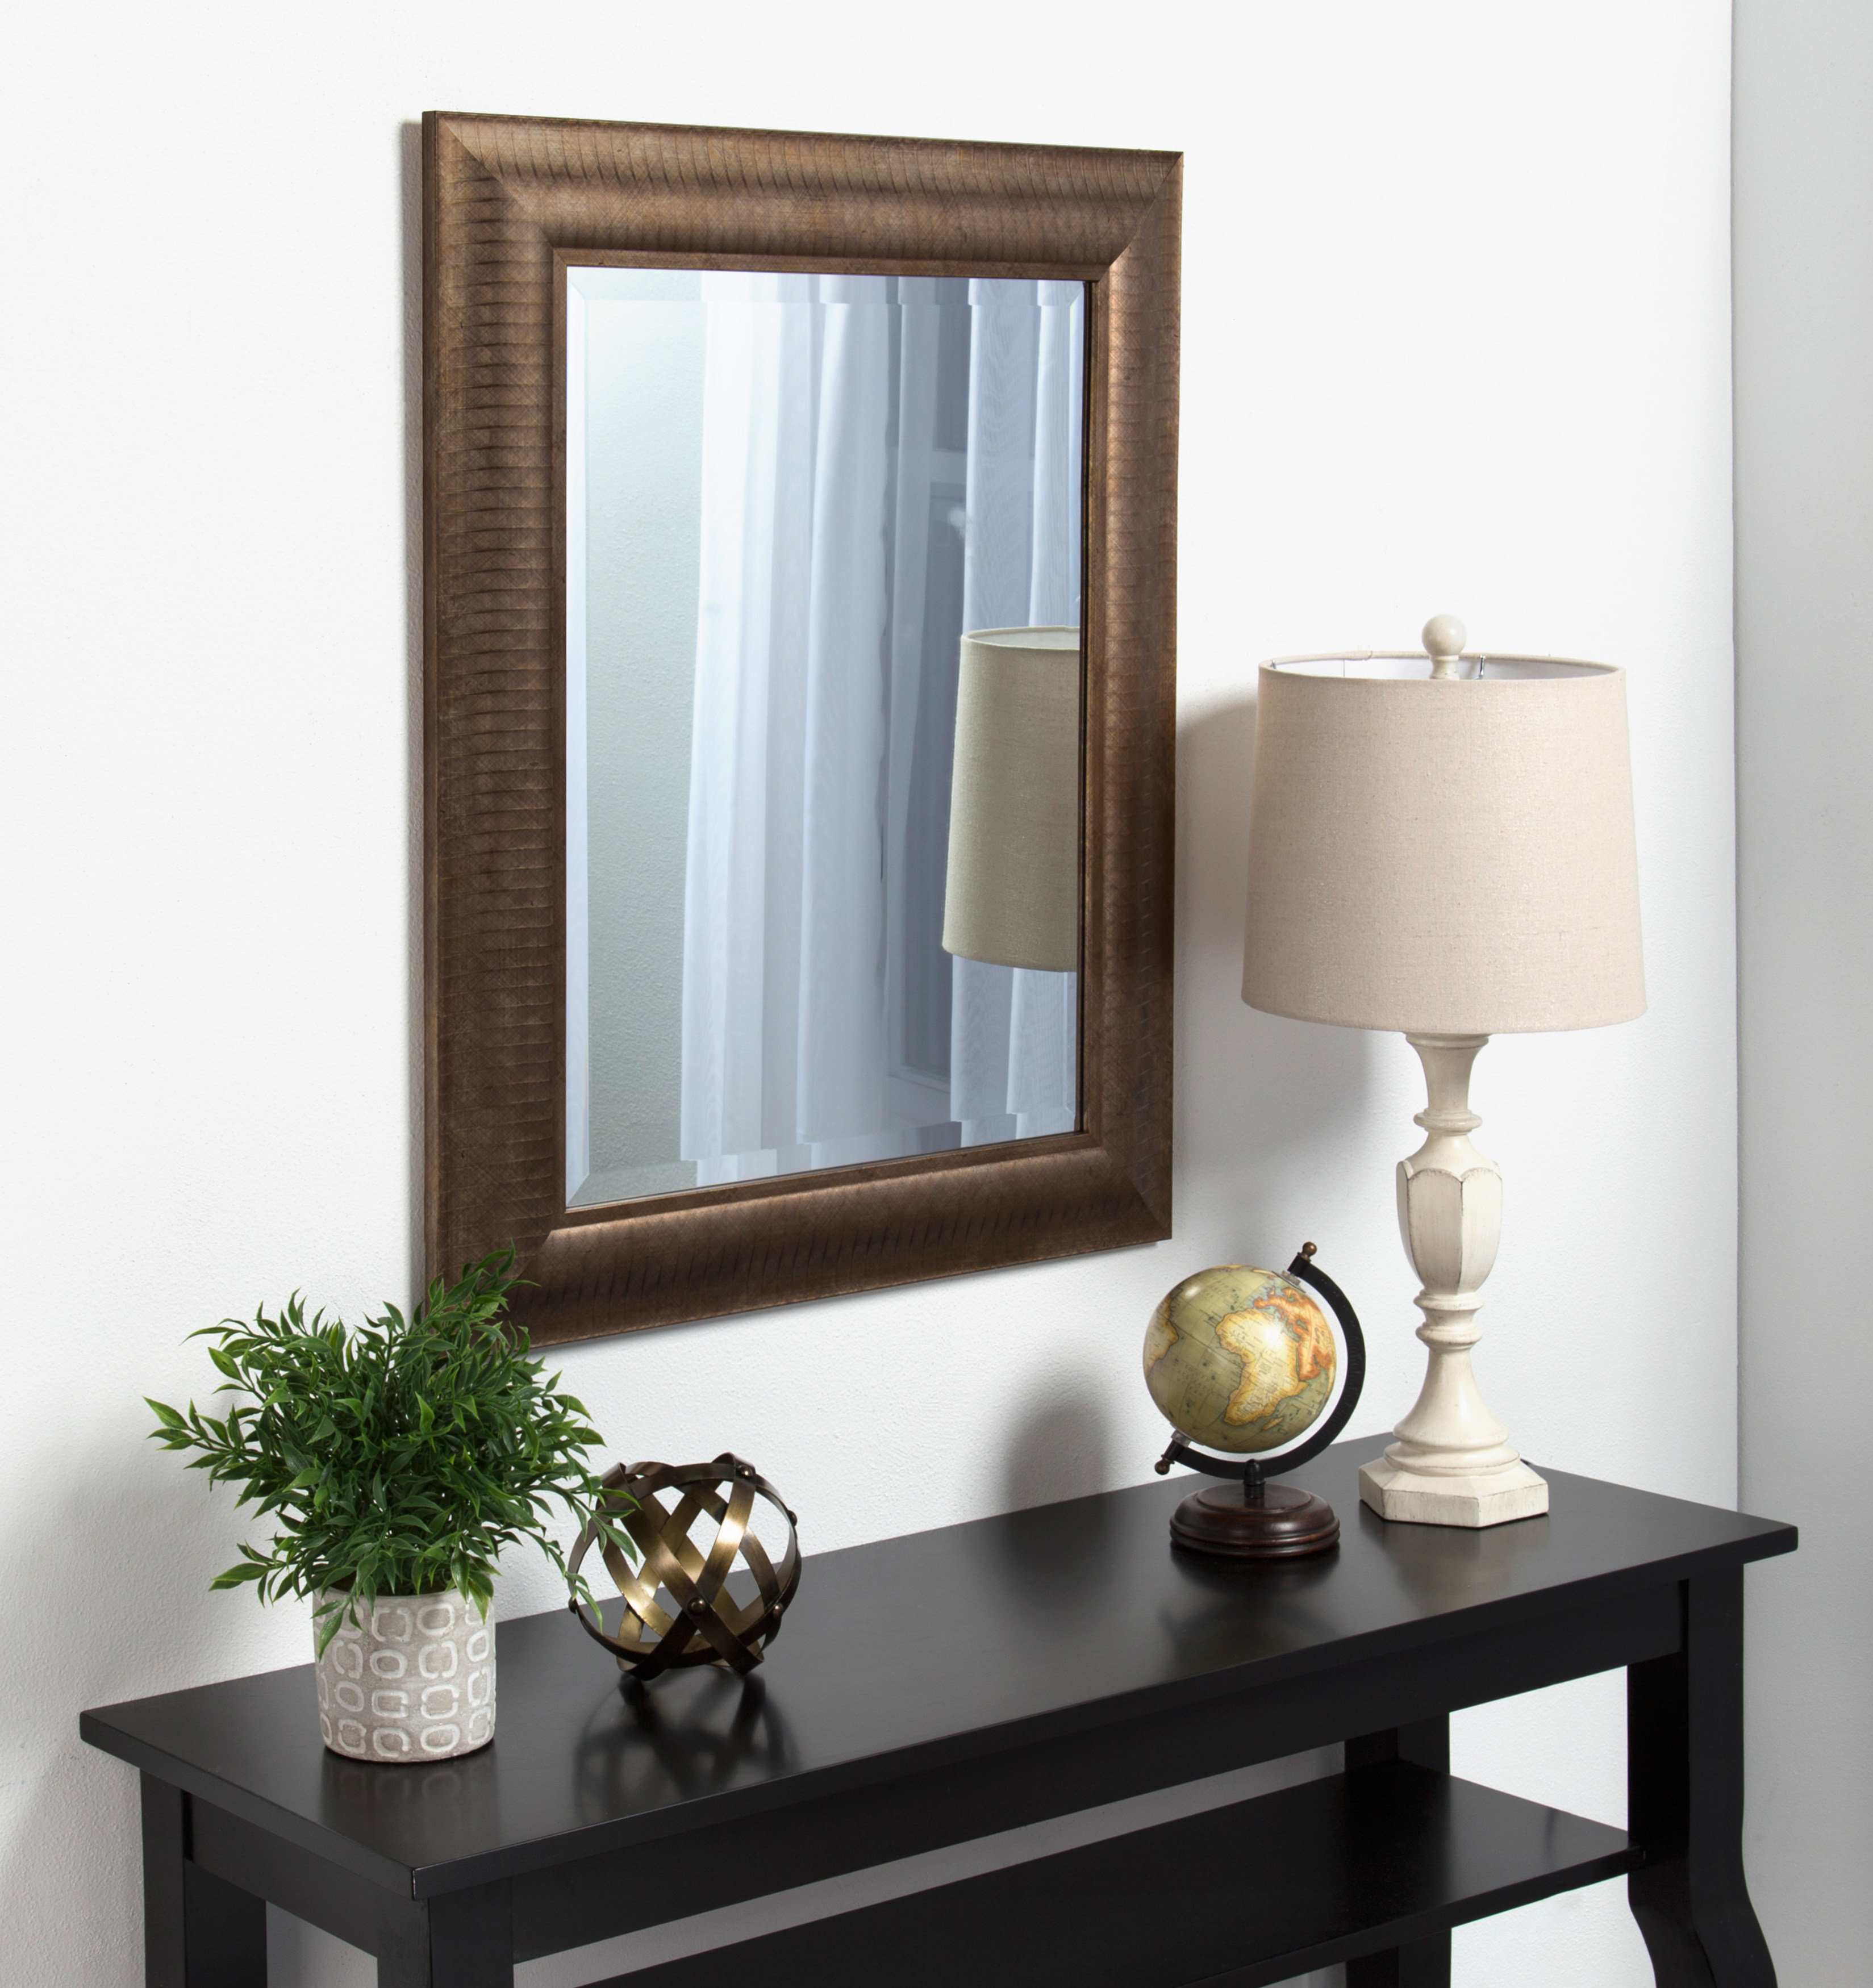 Tora Traditional Beveled Accent Mirror Regarding Willacoochee Traditional Beveled Accent Mirrors (Image 14 of 20)